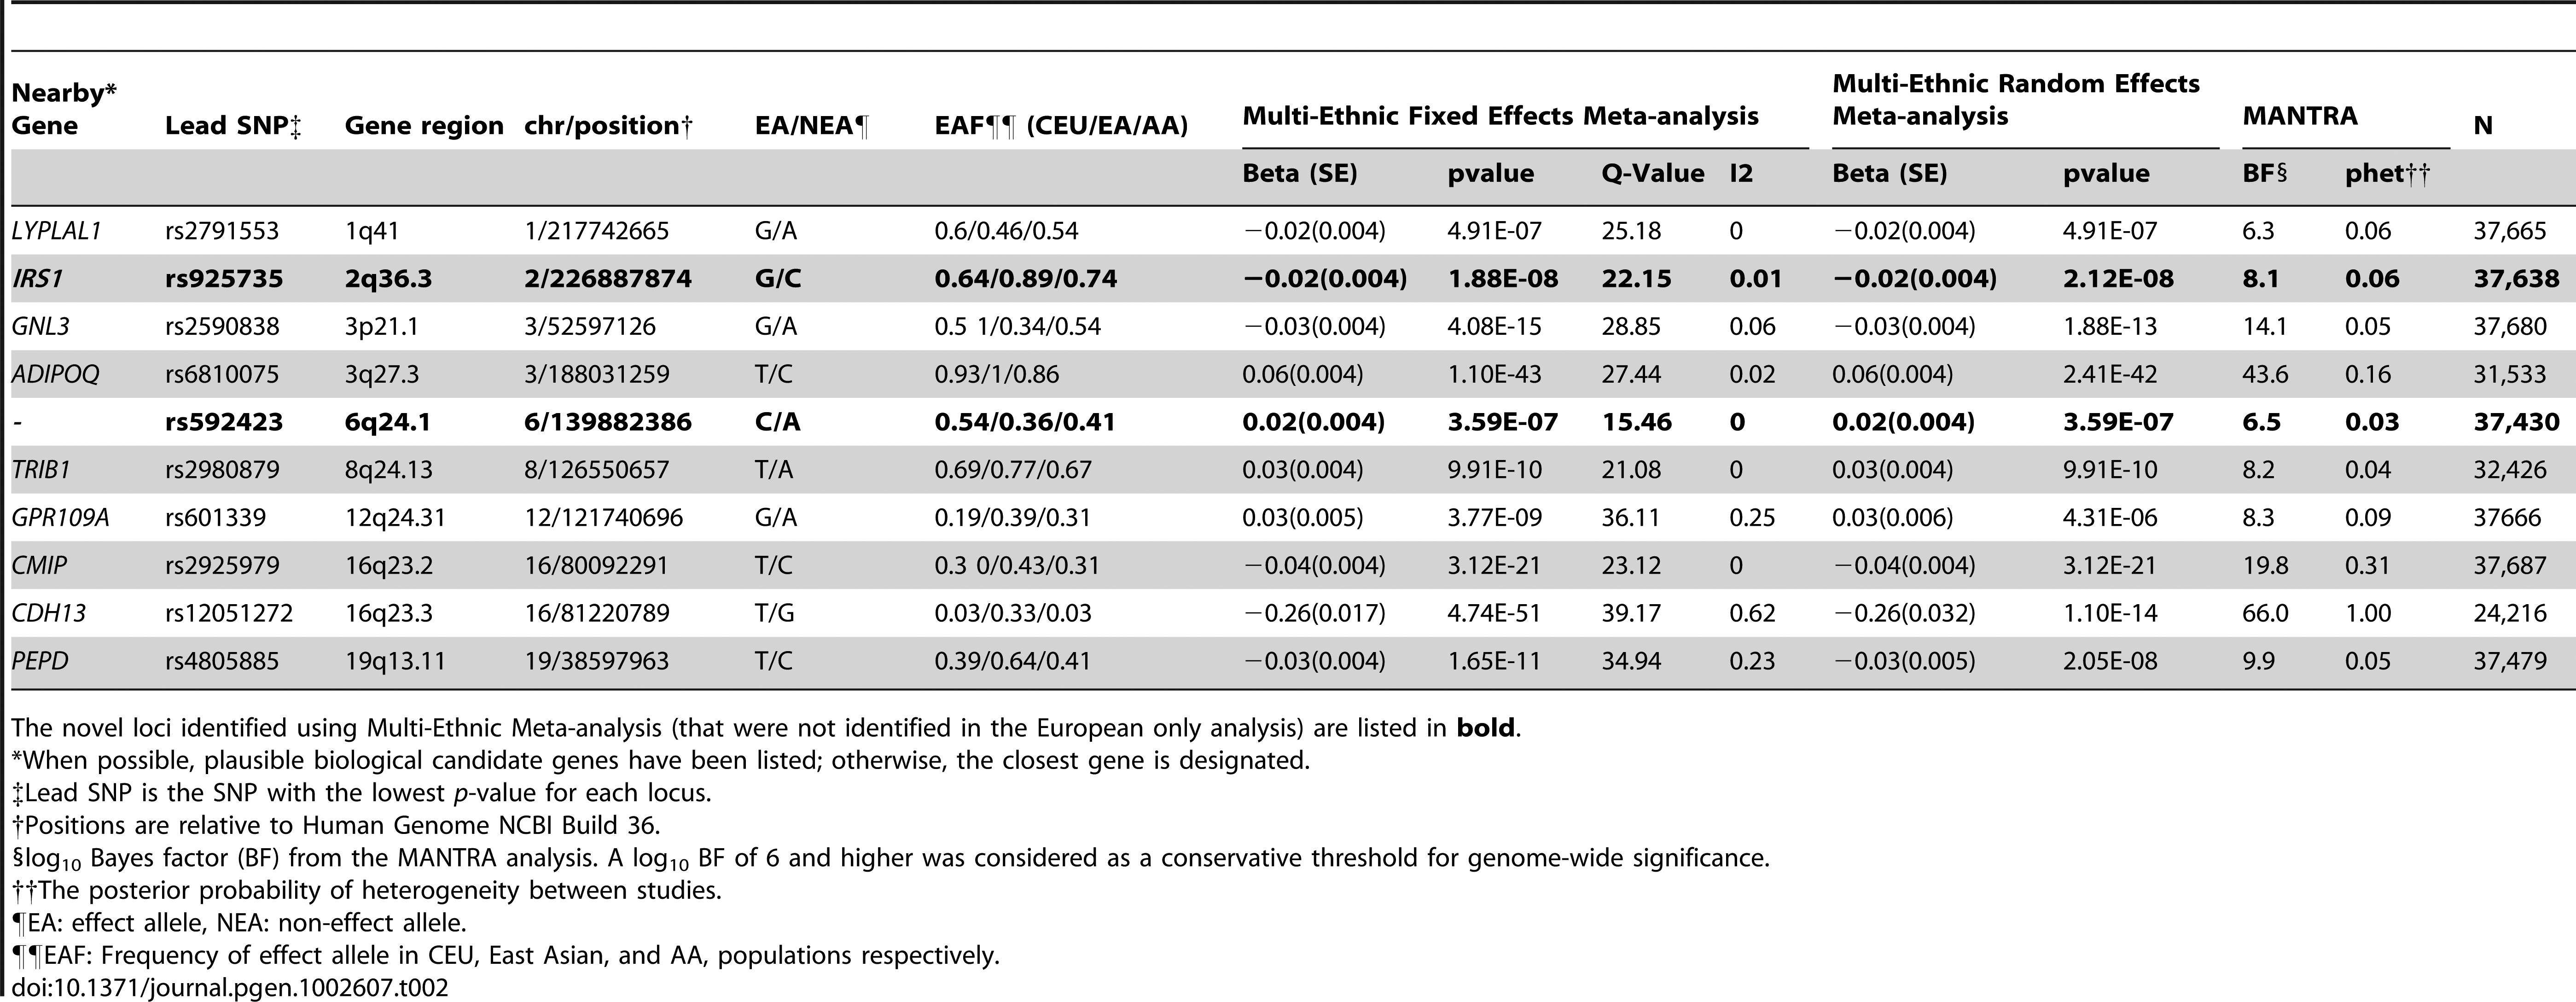 Genome-Wide Significant SNPs from the Sex-Combined Multi-Ethnic Meta-Analysis.